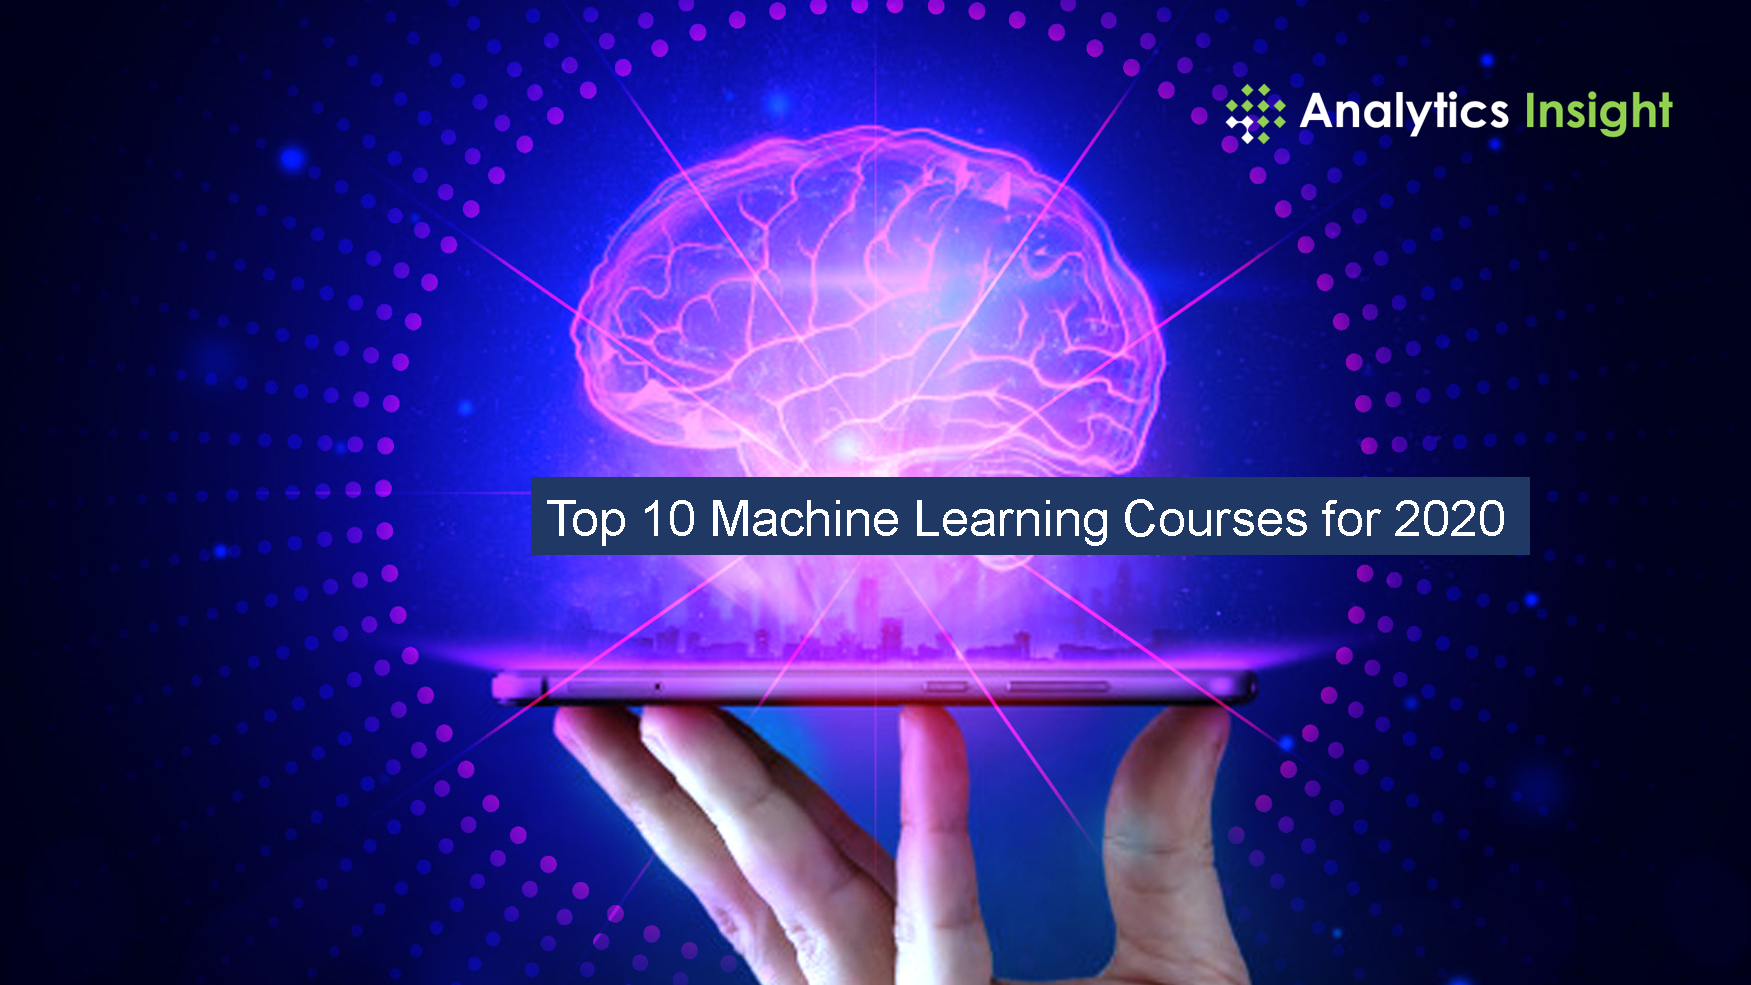 Top 10 Machine Learning Courses for 2020 – Analytics Insight